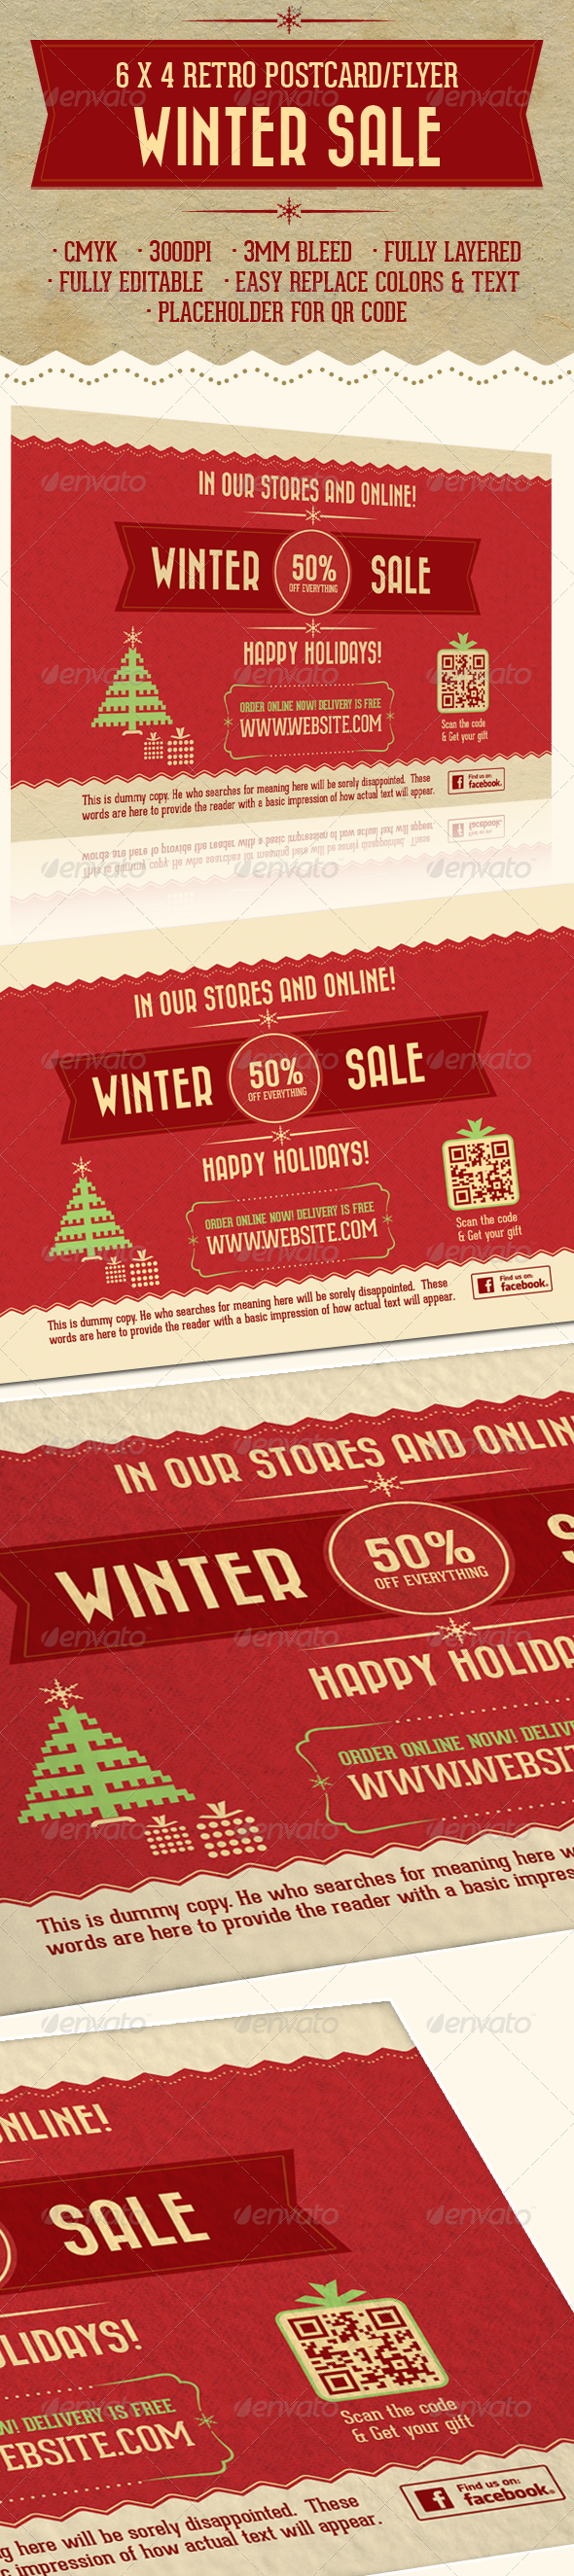 6X4 Retro Holiday Sale Postcard/Flyer  - Flyers Print Templates